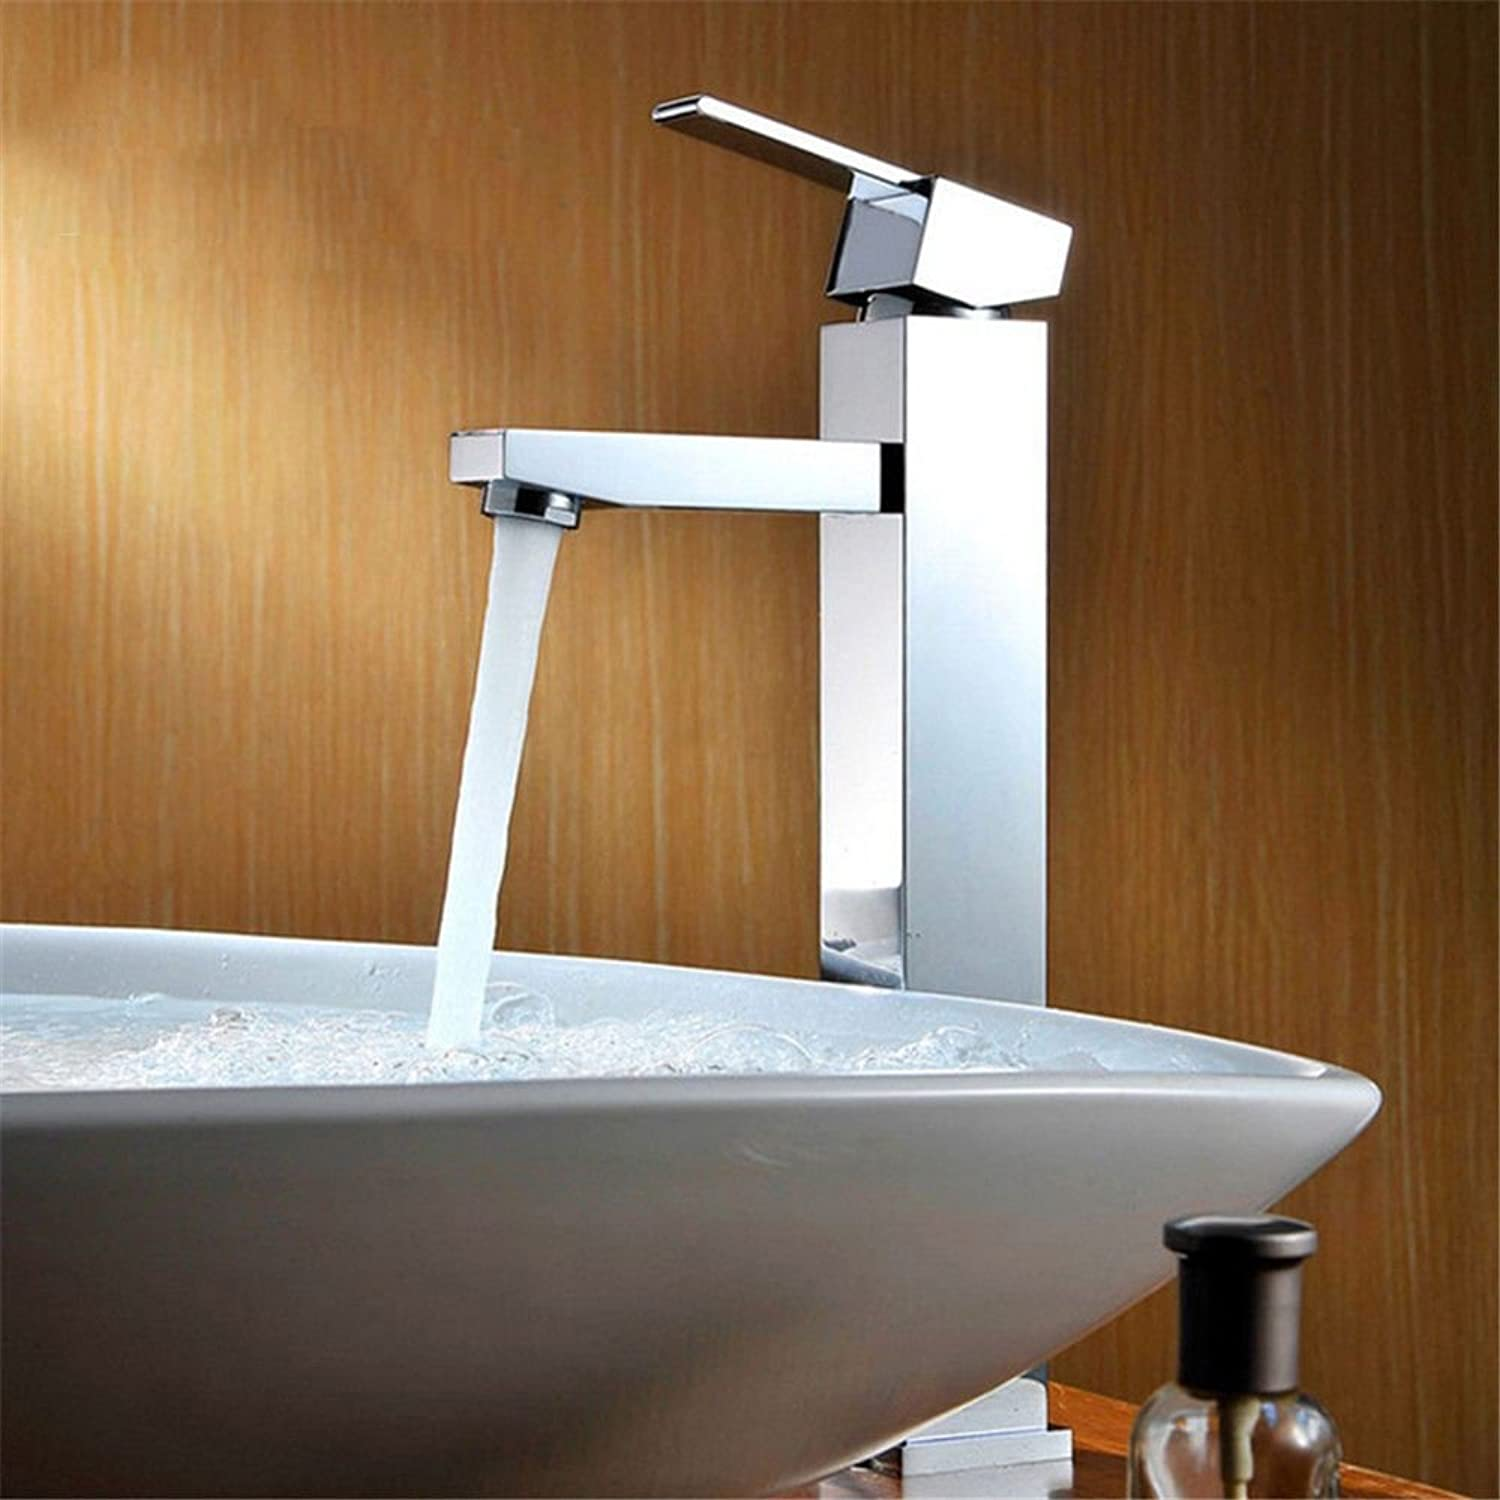 AQMMi Bathroom Vanity Sink Faucet 1 Hole Brass Chrome Hot and Cold Water Single Lever Bathroom Basin Sink Tap Bathroom Faucet